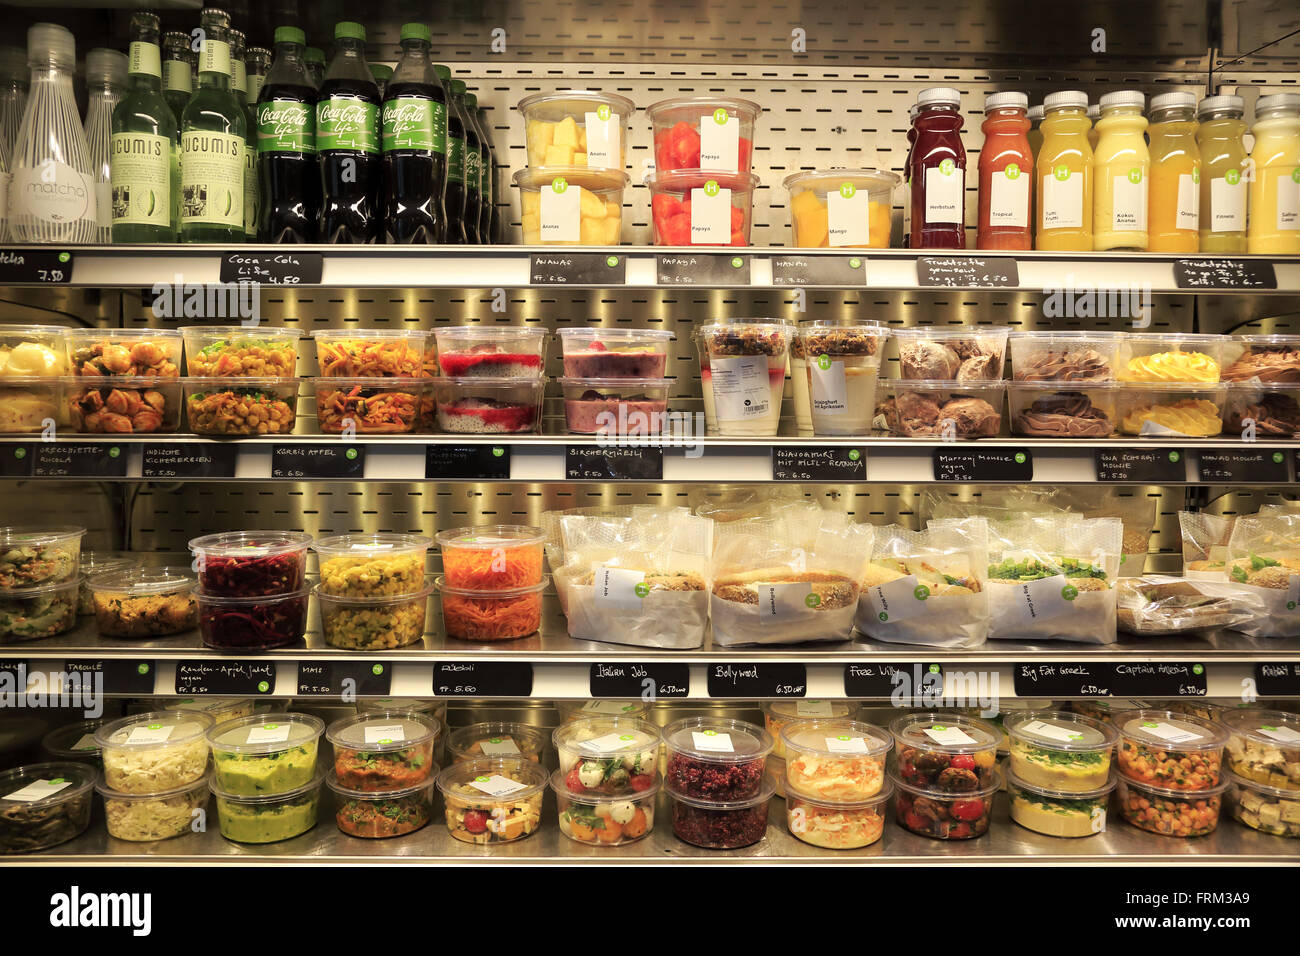 Healthy food products for sale in HILTL restaurant store